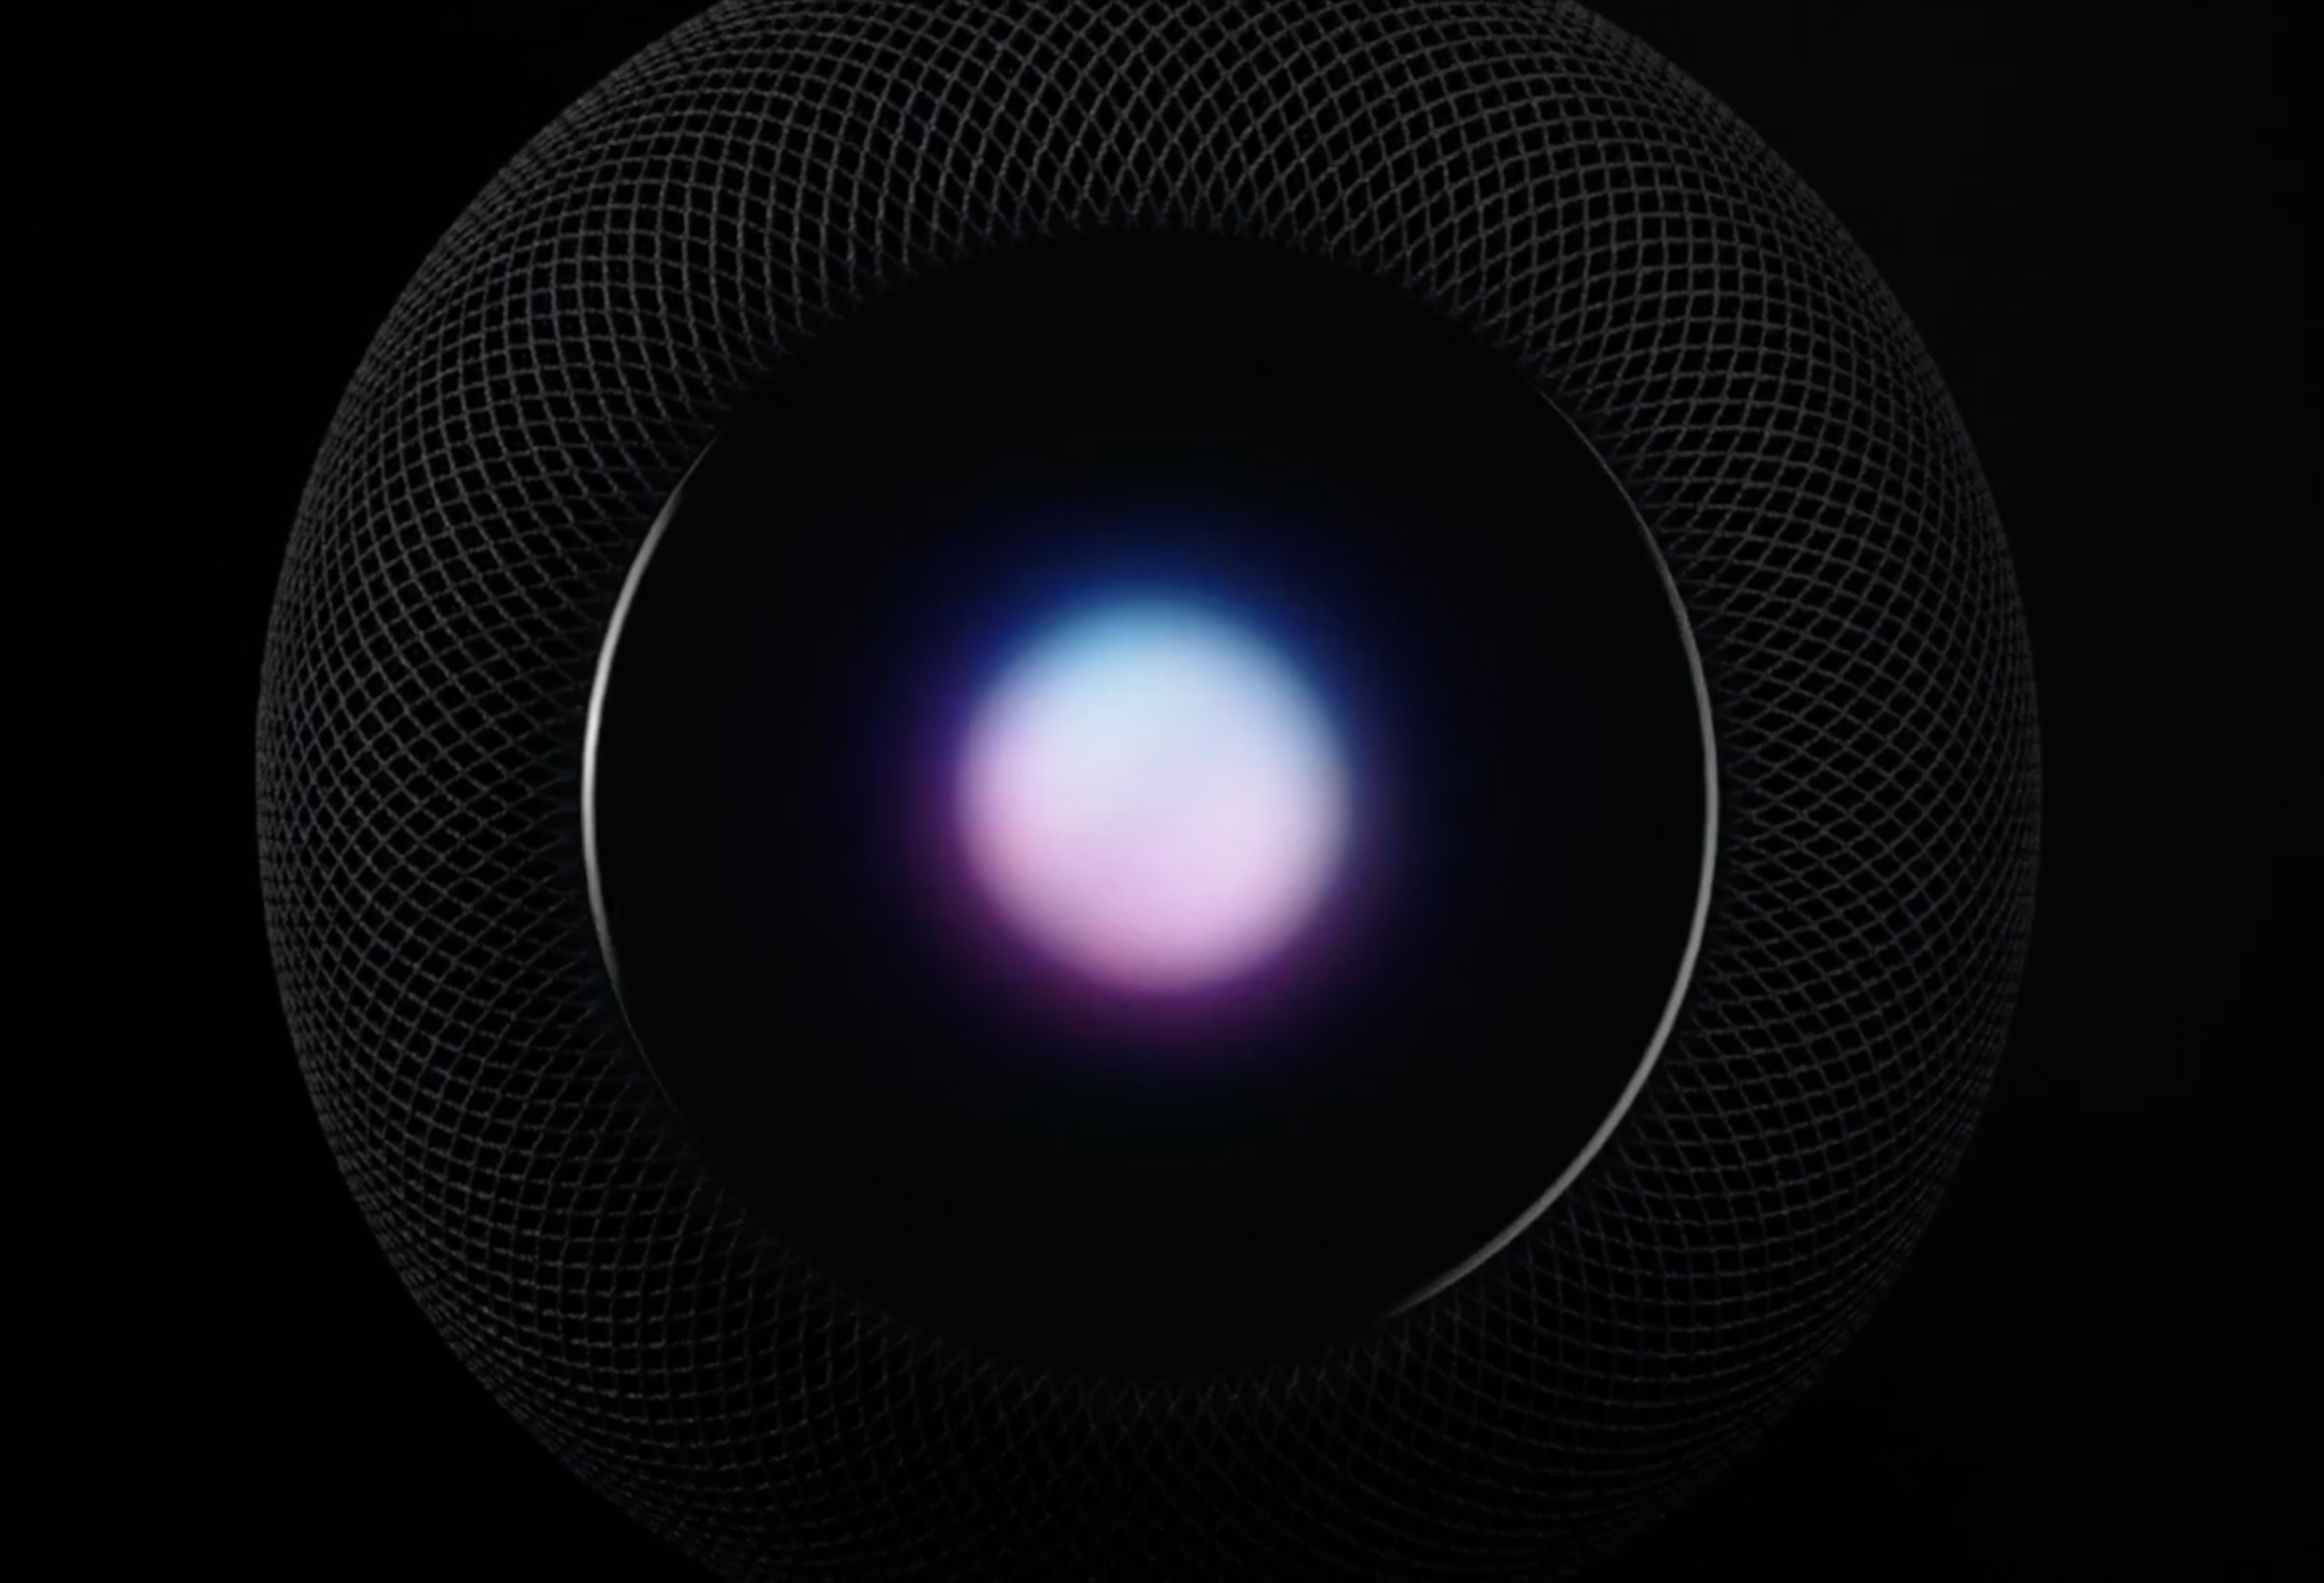 apple-homepod-black-top-view-siri-animation-lights.jpg